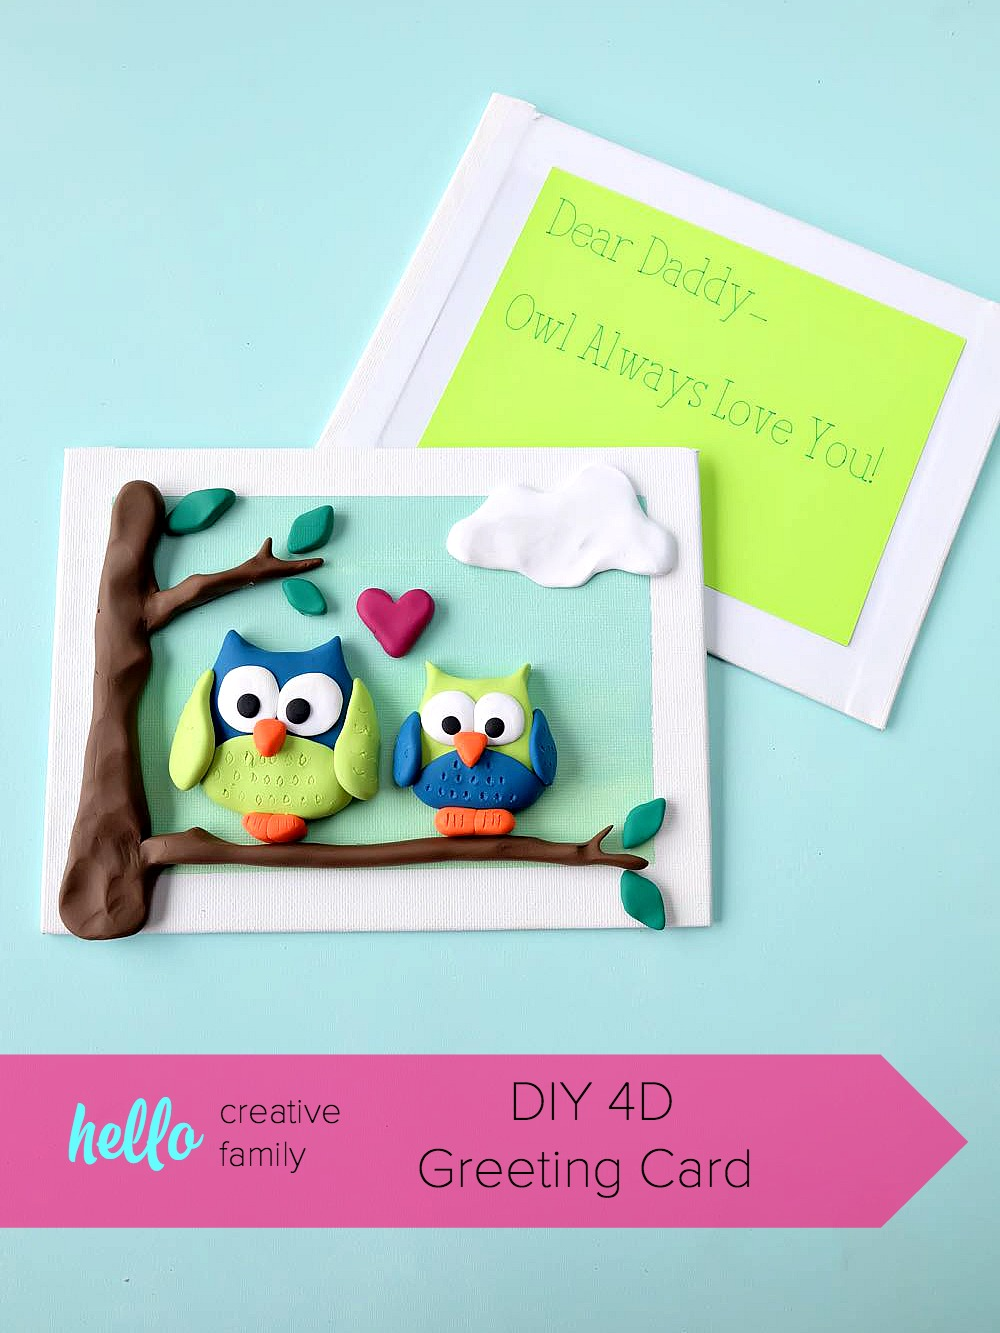 50 More Quick And Easy Handmade Gift Ideas 1 Hour Or Less